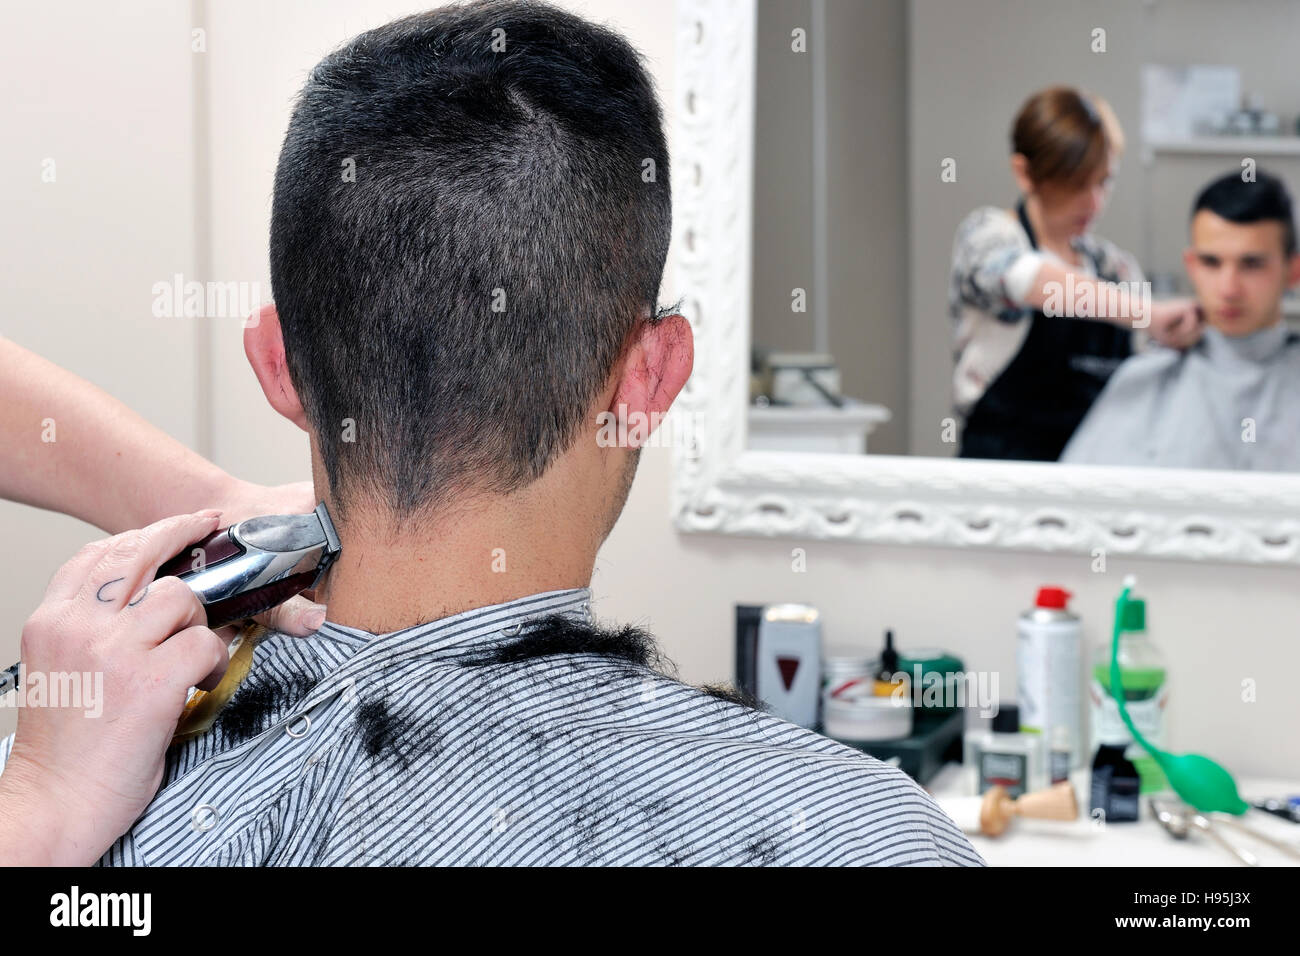 Barber shop that performs the haircut of a young boy with electric clippers. - Stock Image